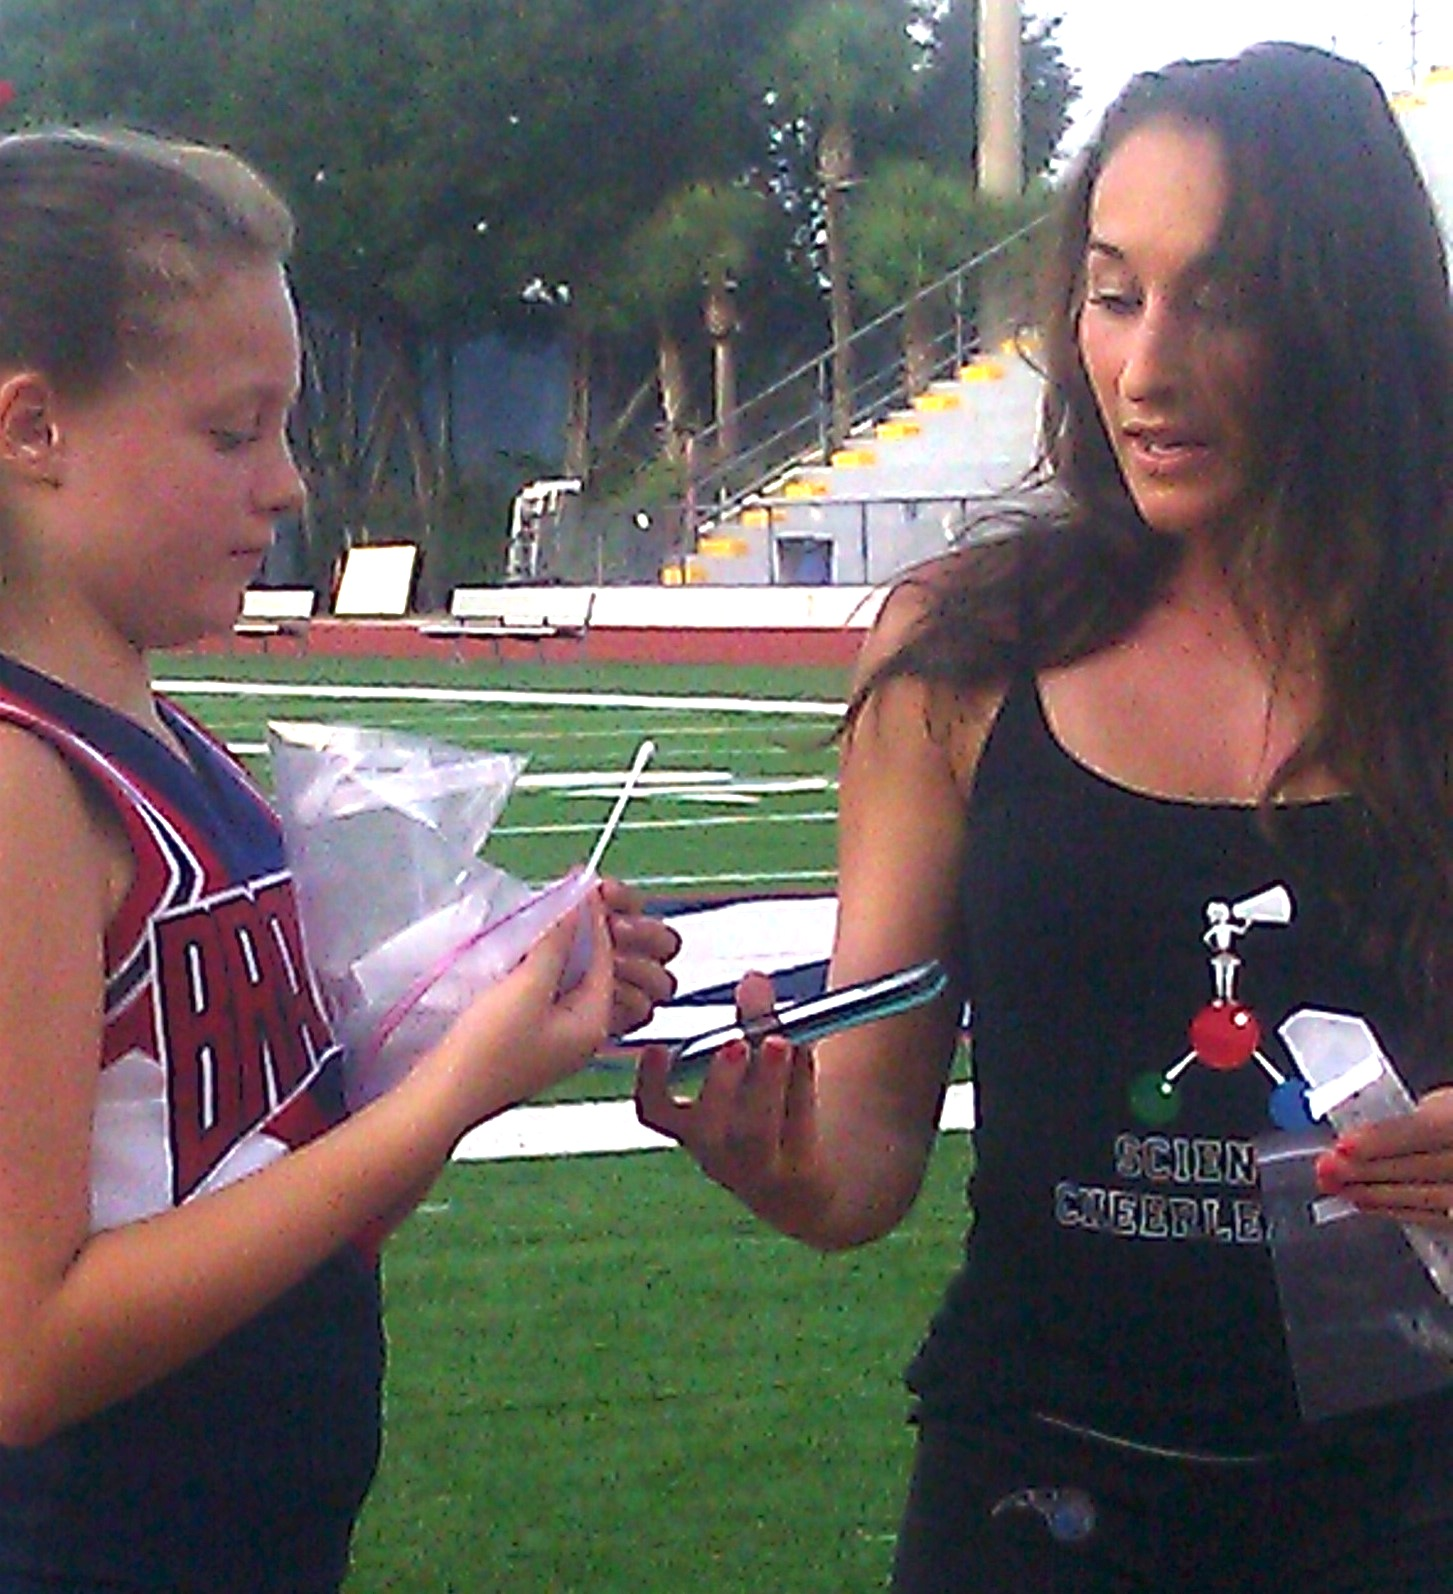 Guest post from Pop Warner cheer coach and seven-year-old cheerleader who participated in Project MERCCURI.